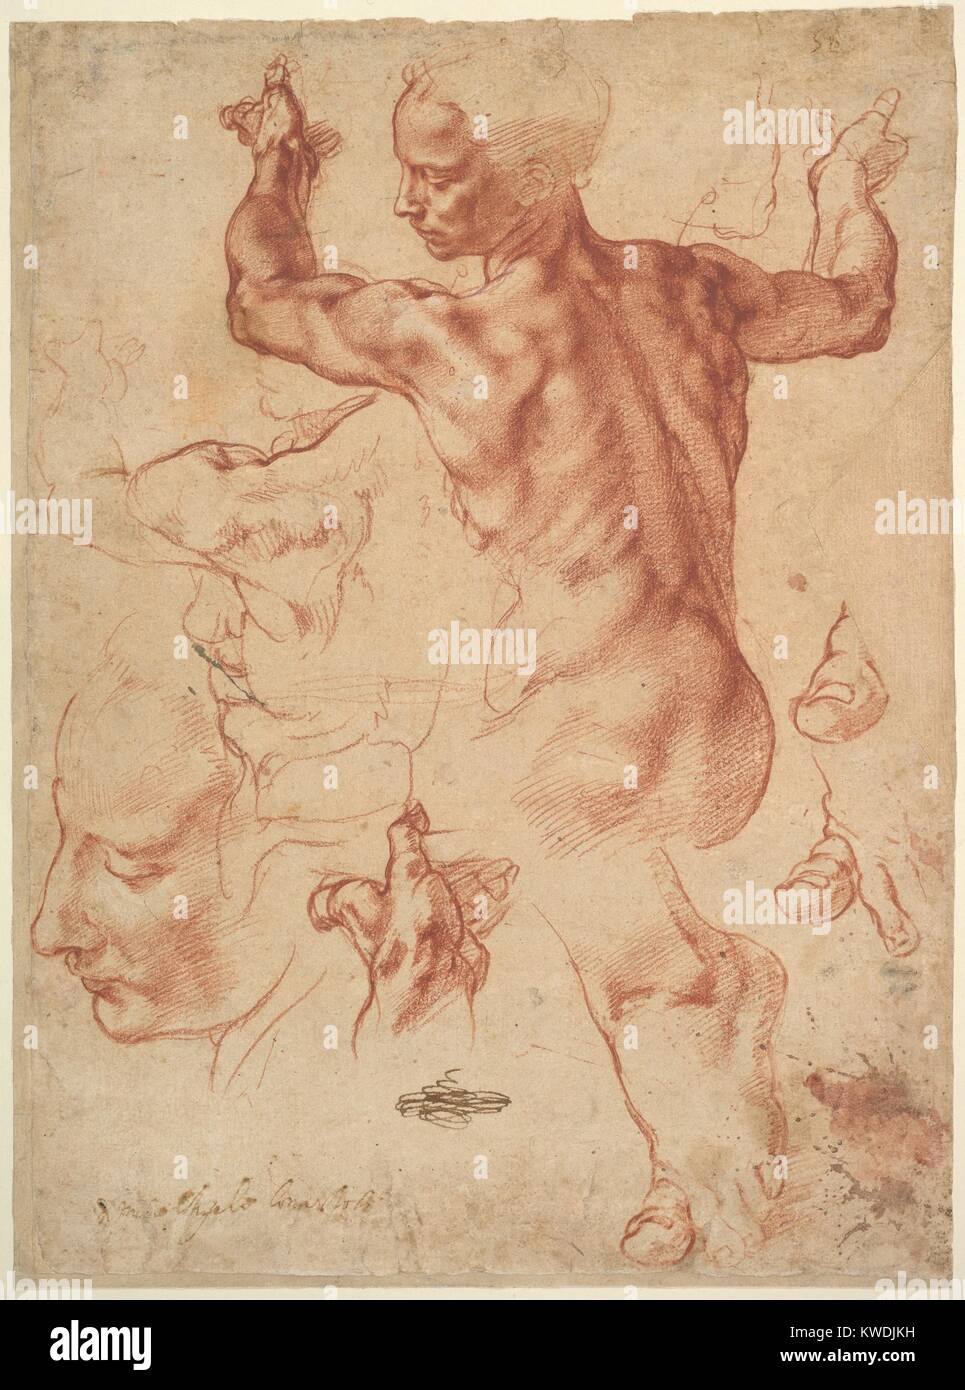 STUDIES FOR THE LIBYAN SIBYL, by Michelangelo, 1510–11, Italian Renaissance chalk drawing. Preparatory drawing for - Stock Image